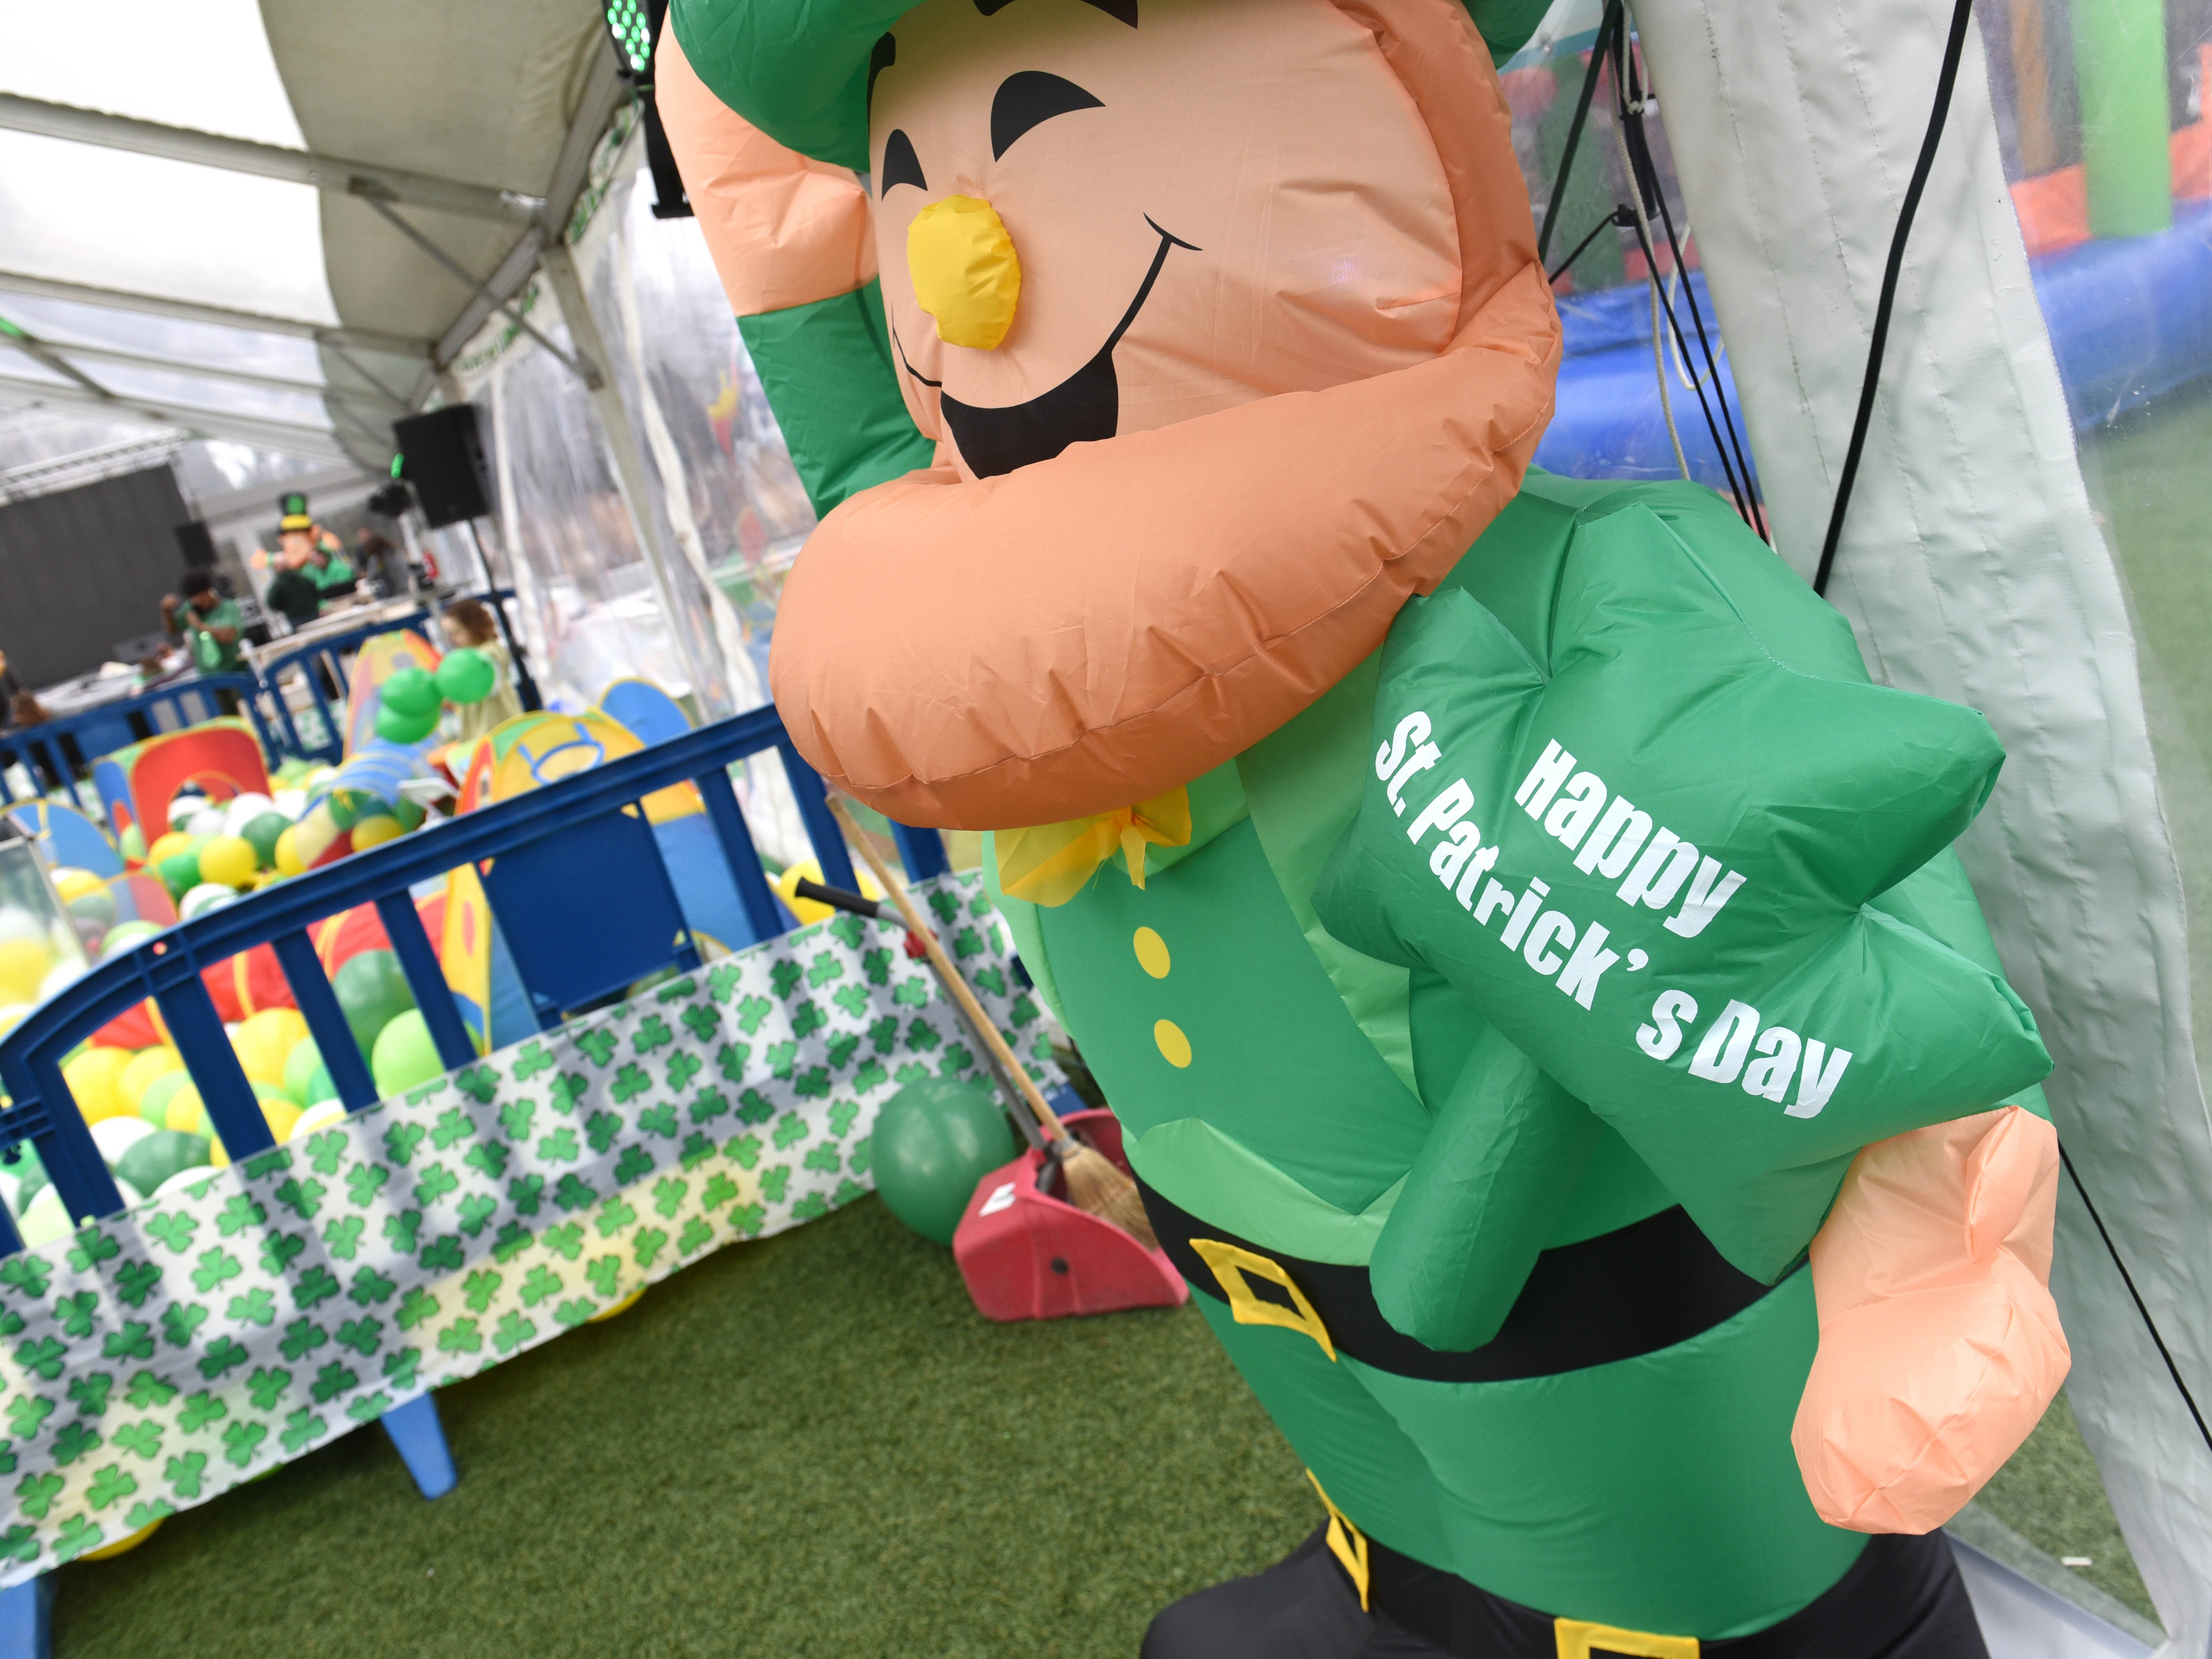 The St. Patrick's Day Party at Beacon Park took place inside a giant heated tent.